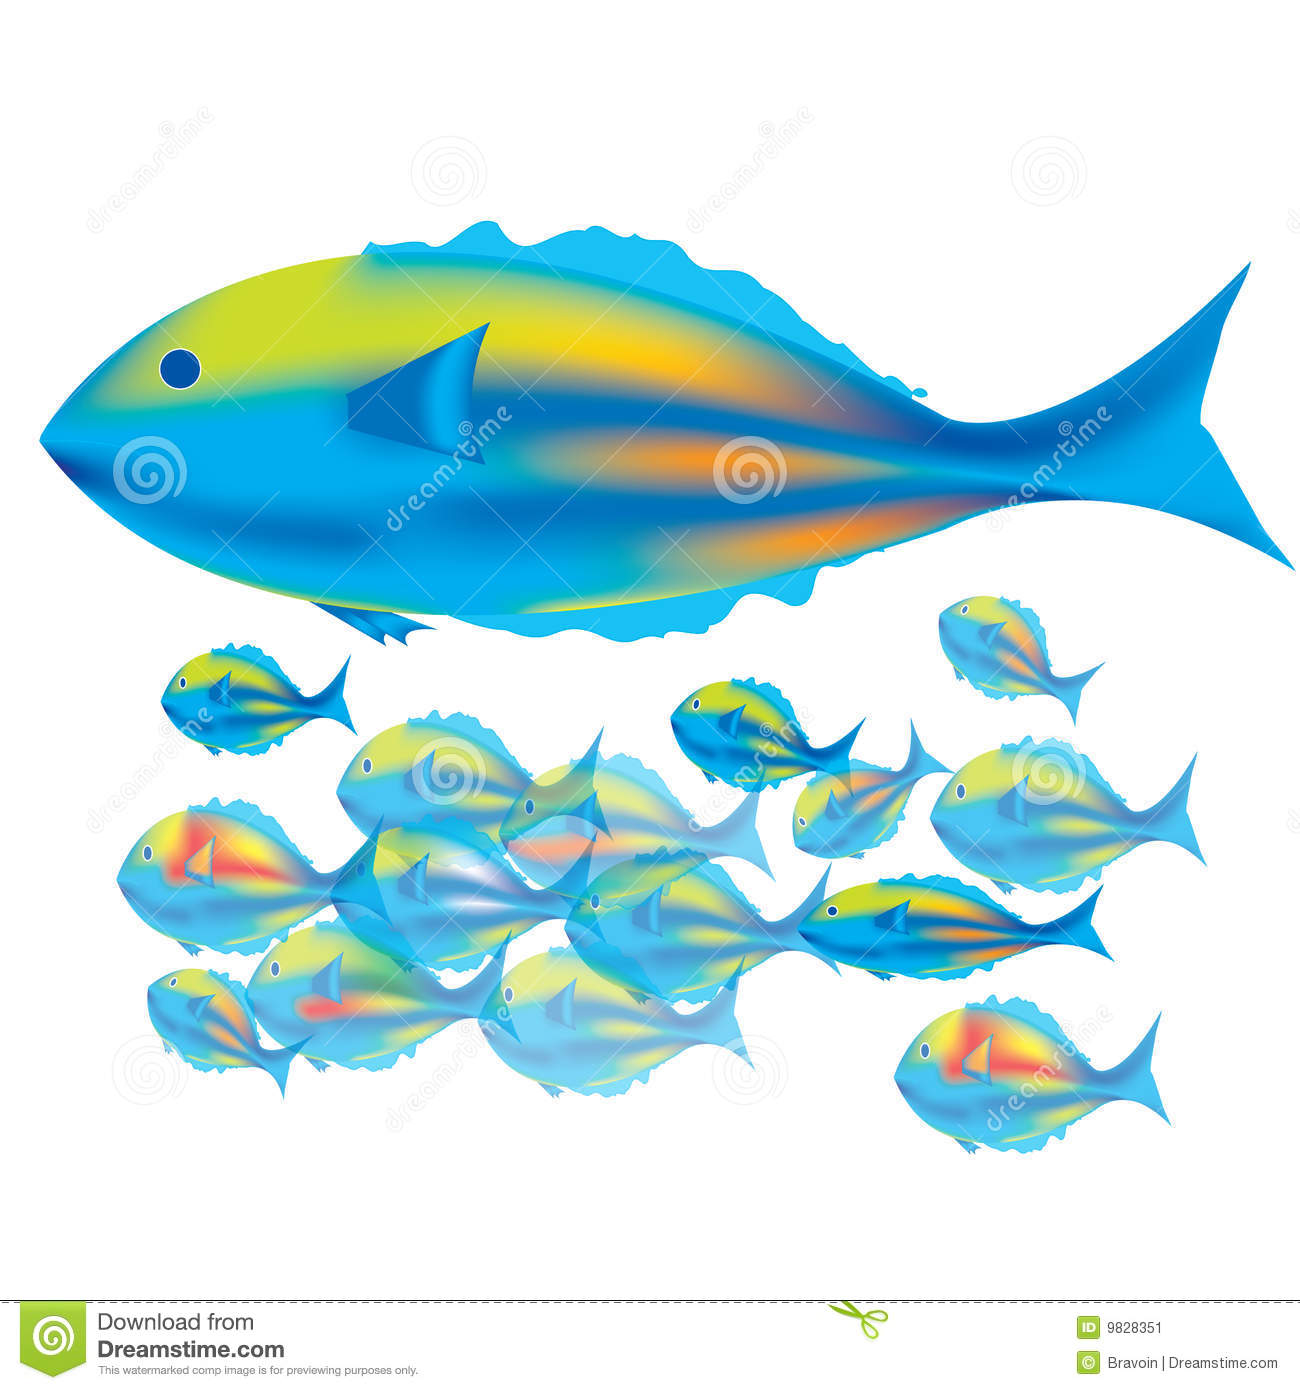 Mother fish baby fishes stock image image 9828351 for Baby fish song